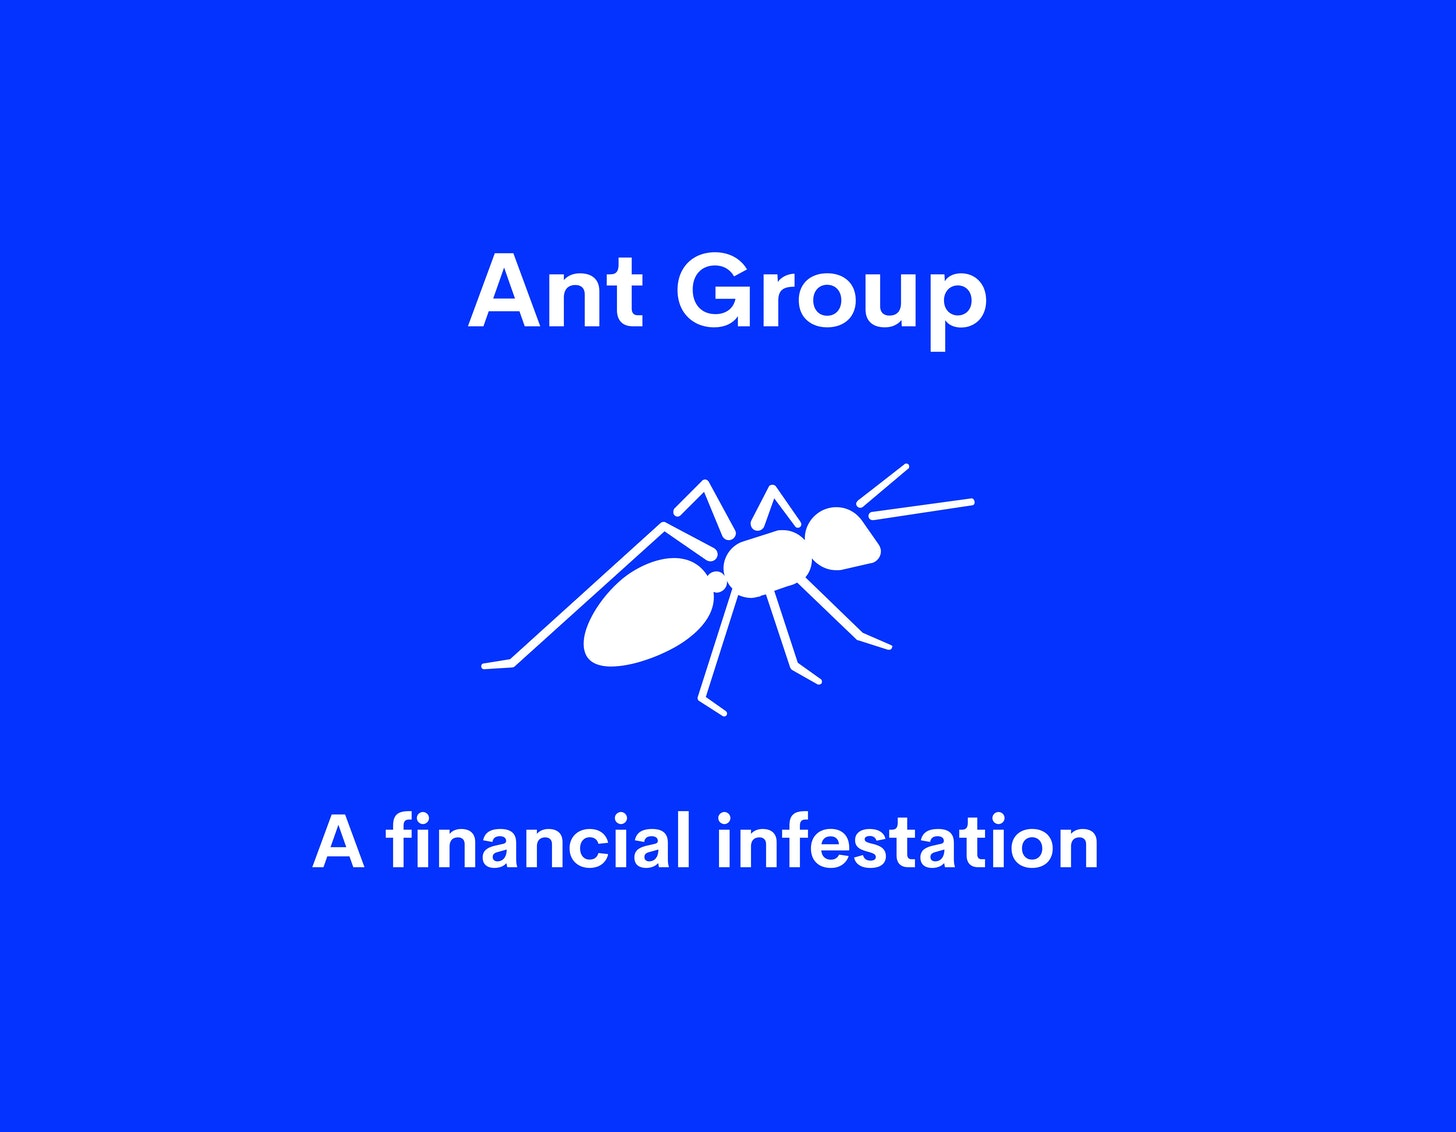 Ant Group: A Financial Infestation